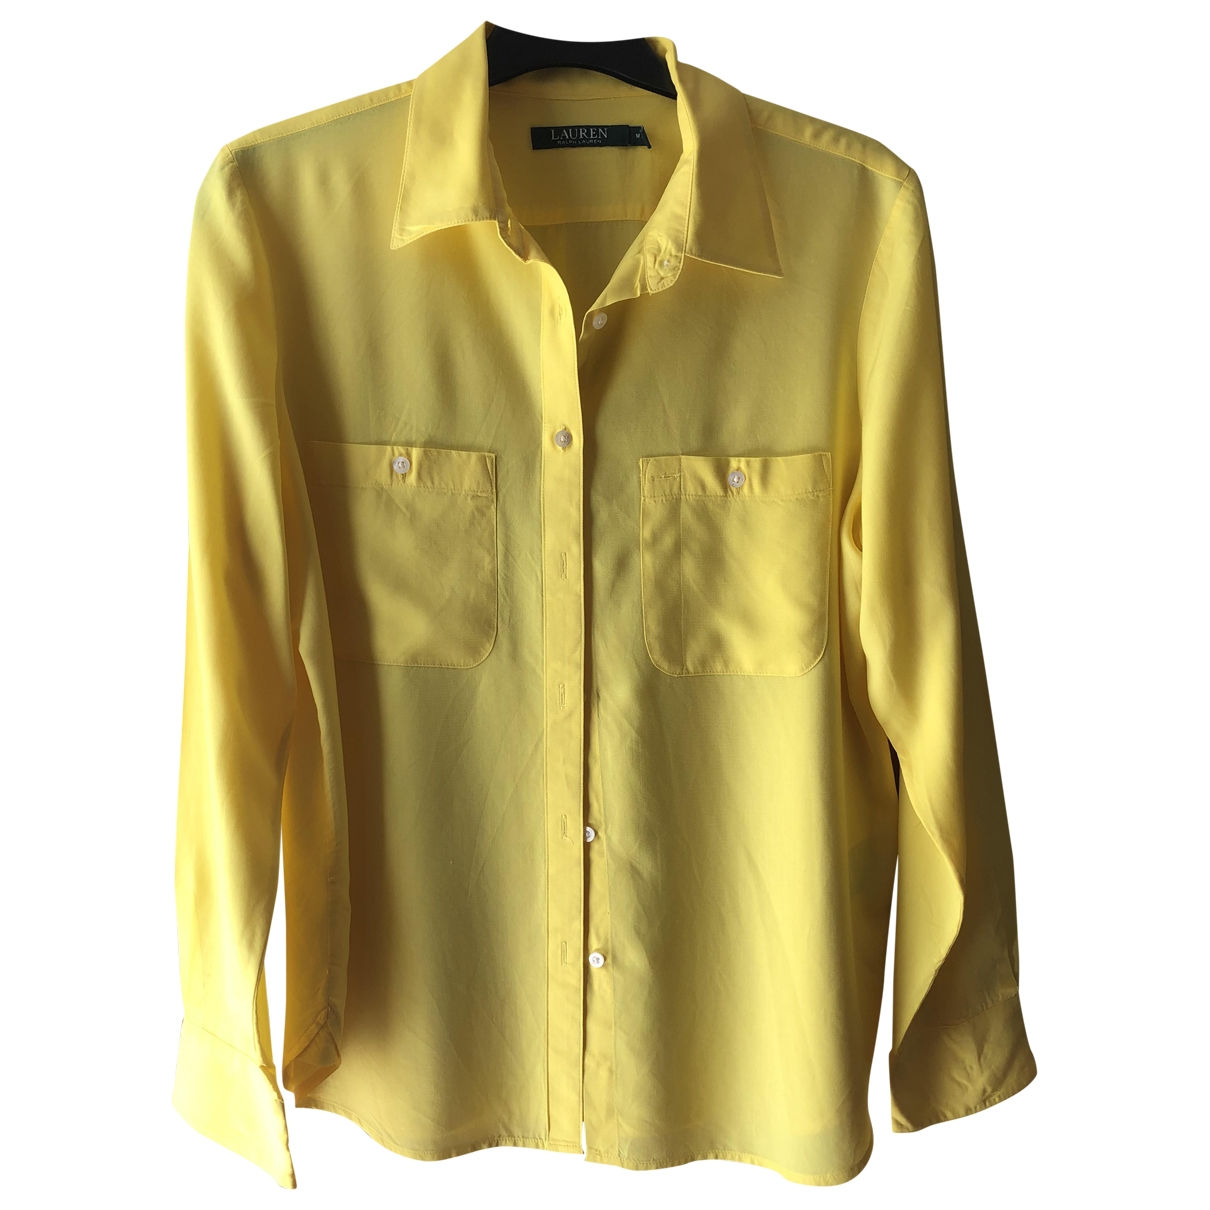 Lauren Ralph Lauren \N Yellow  top for Women M International